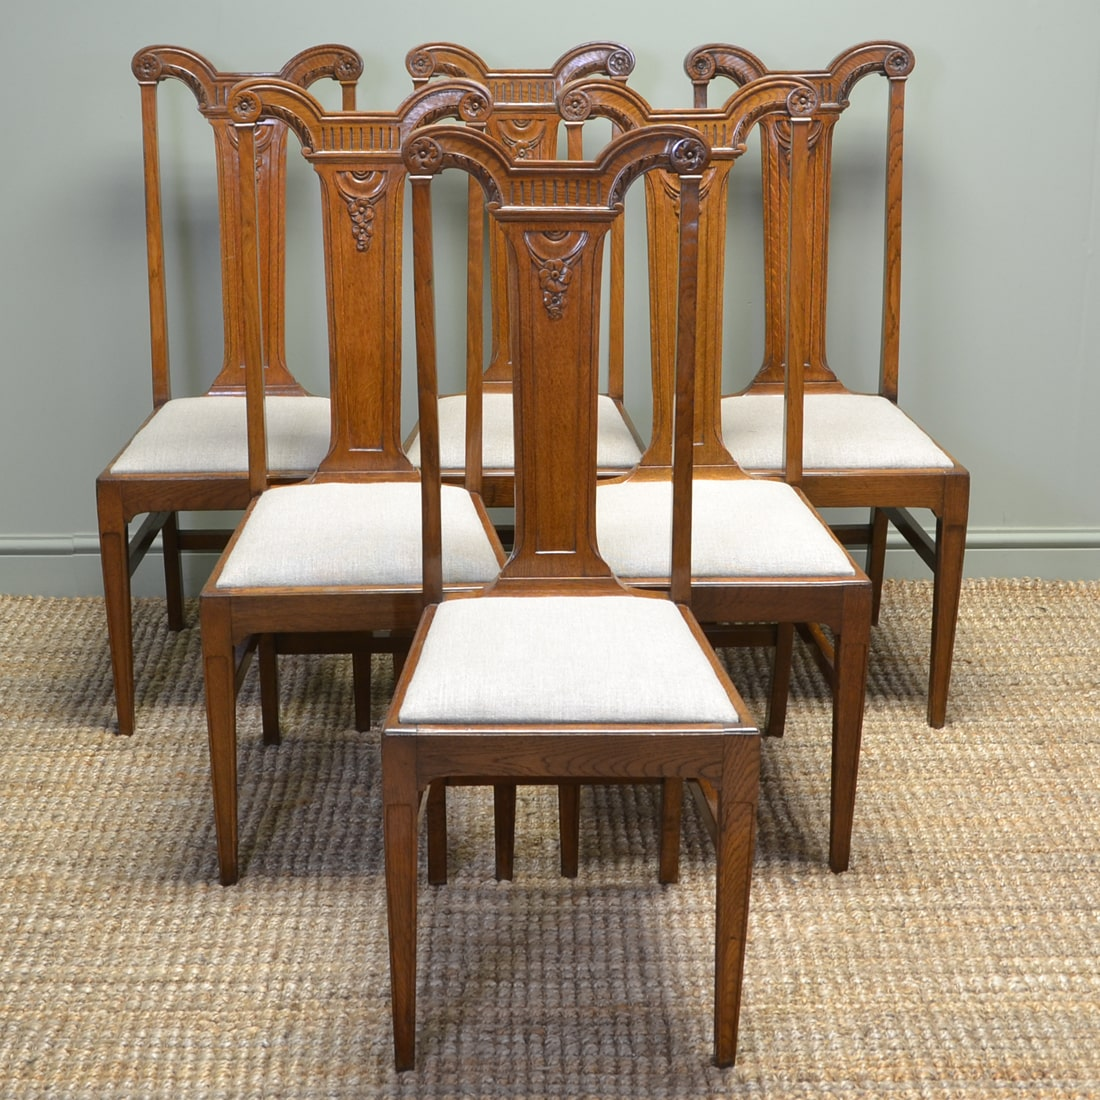 High quality set of six arts and crafts victorian golden oak antique dining chairs antiques world - Arts and crafts dining room furniture ...